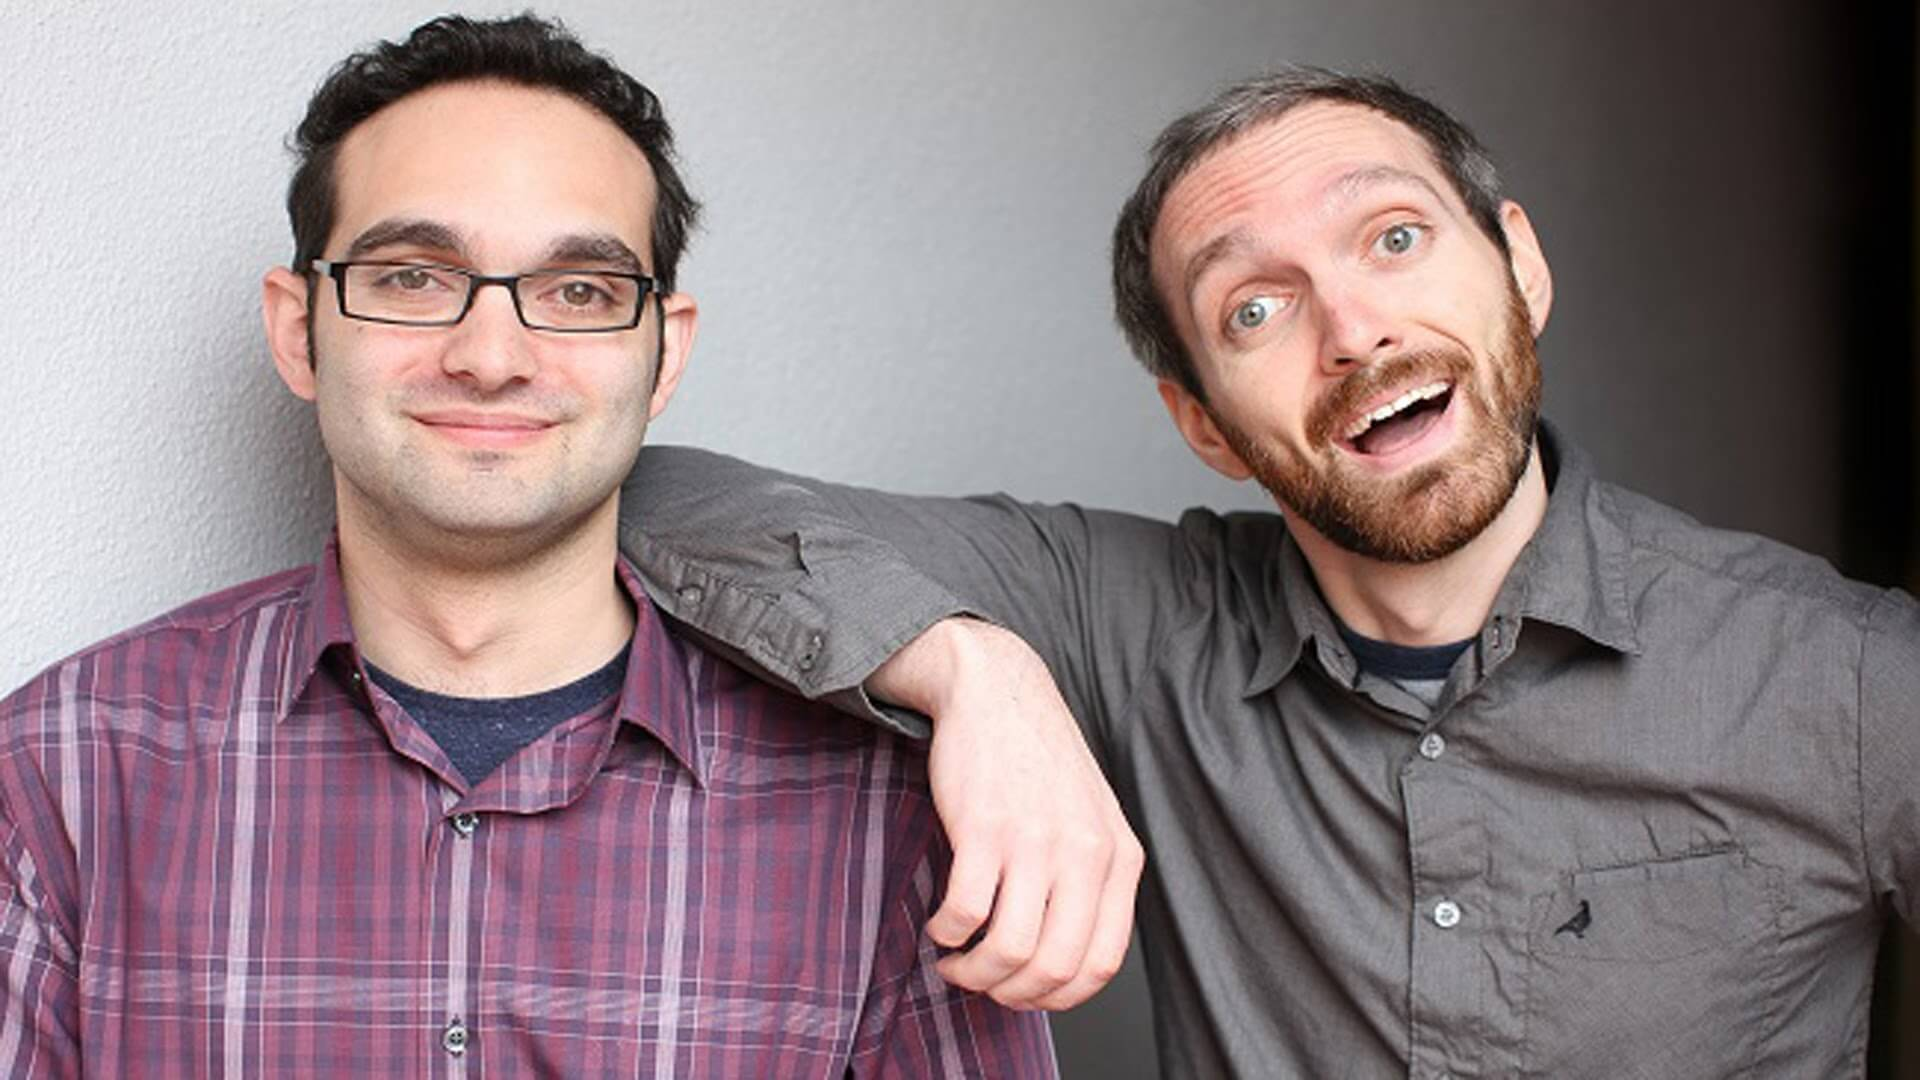 Fine Bros Cancel Trademark Of React Videos